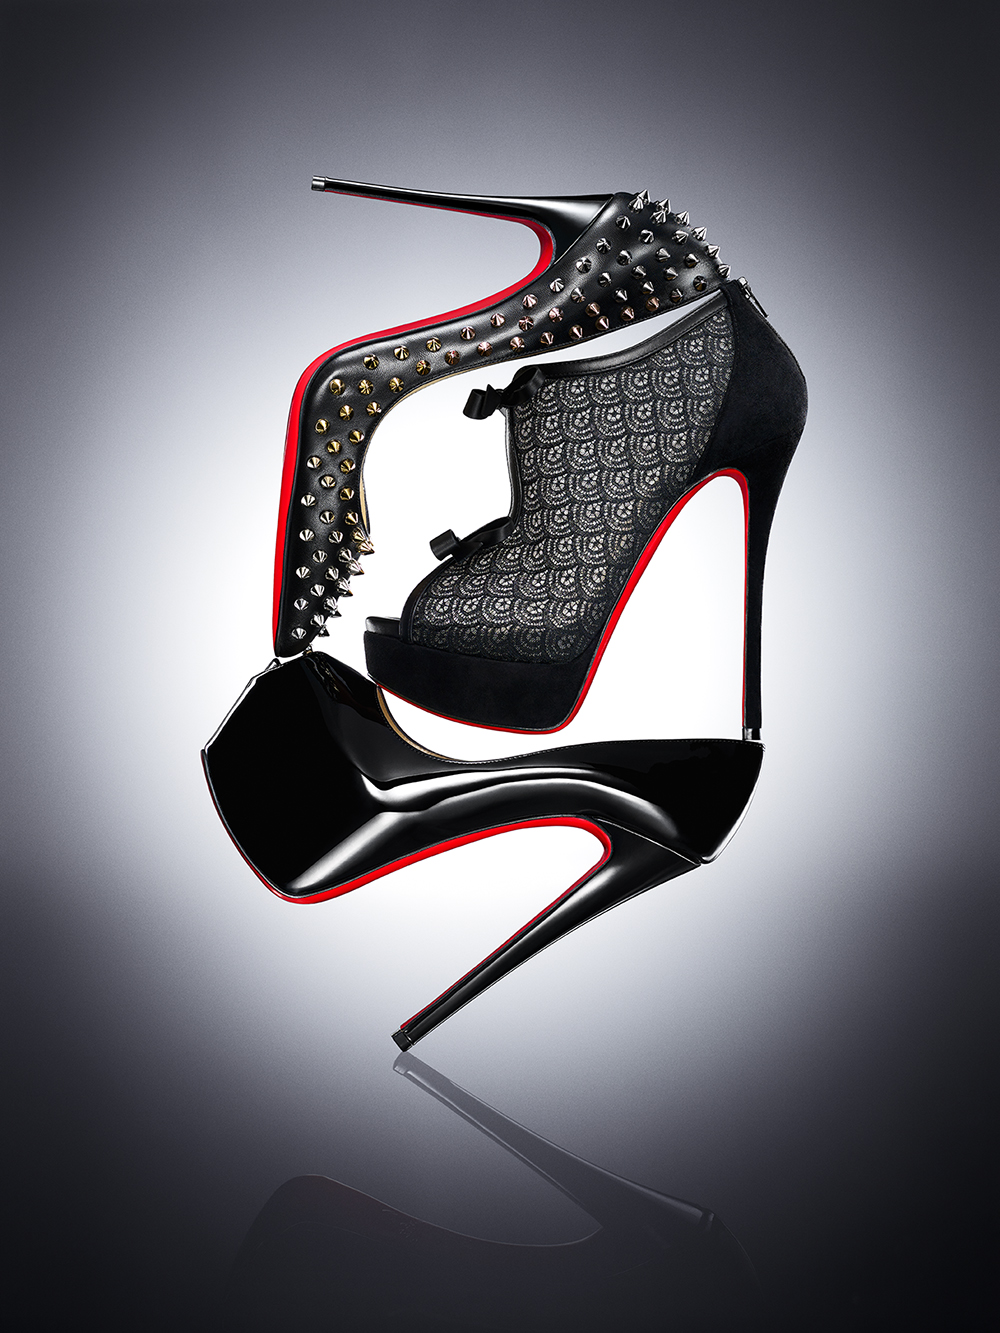 HIGHHEELS IN A STACK MADE BY CHRISTIAN LOUBOUTIN SHOT BY DAVID FILIBERTI